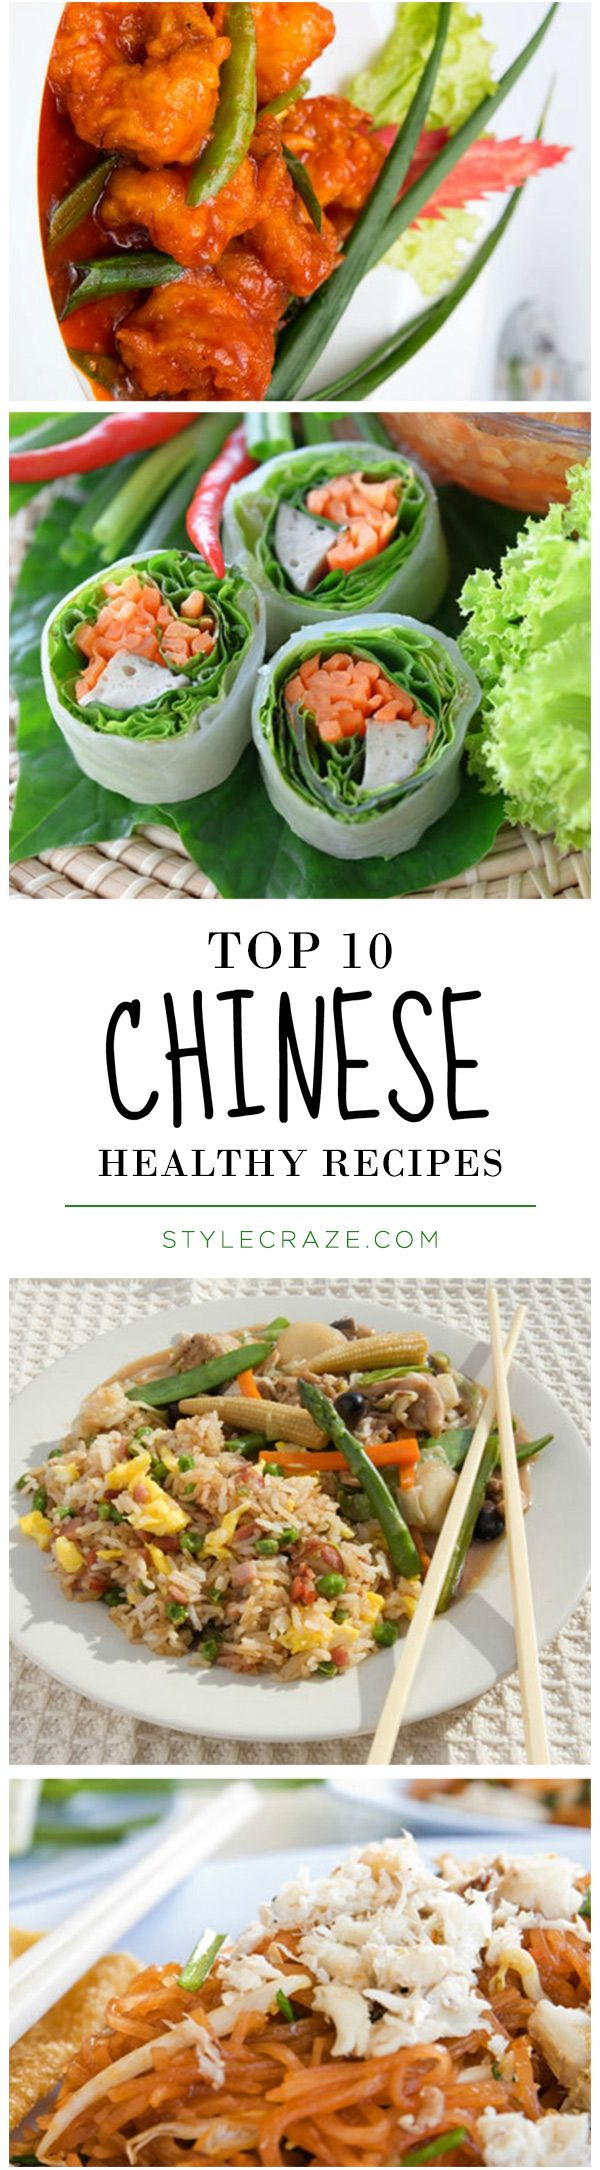 Top 20 Chinese Salad Recipes For Good Health